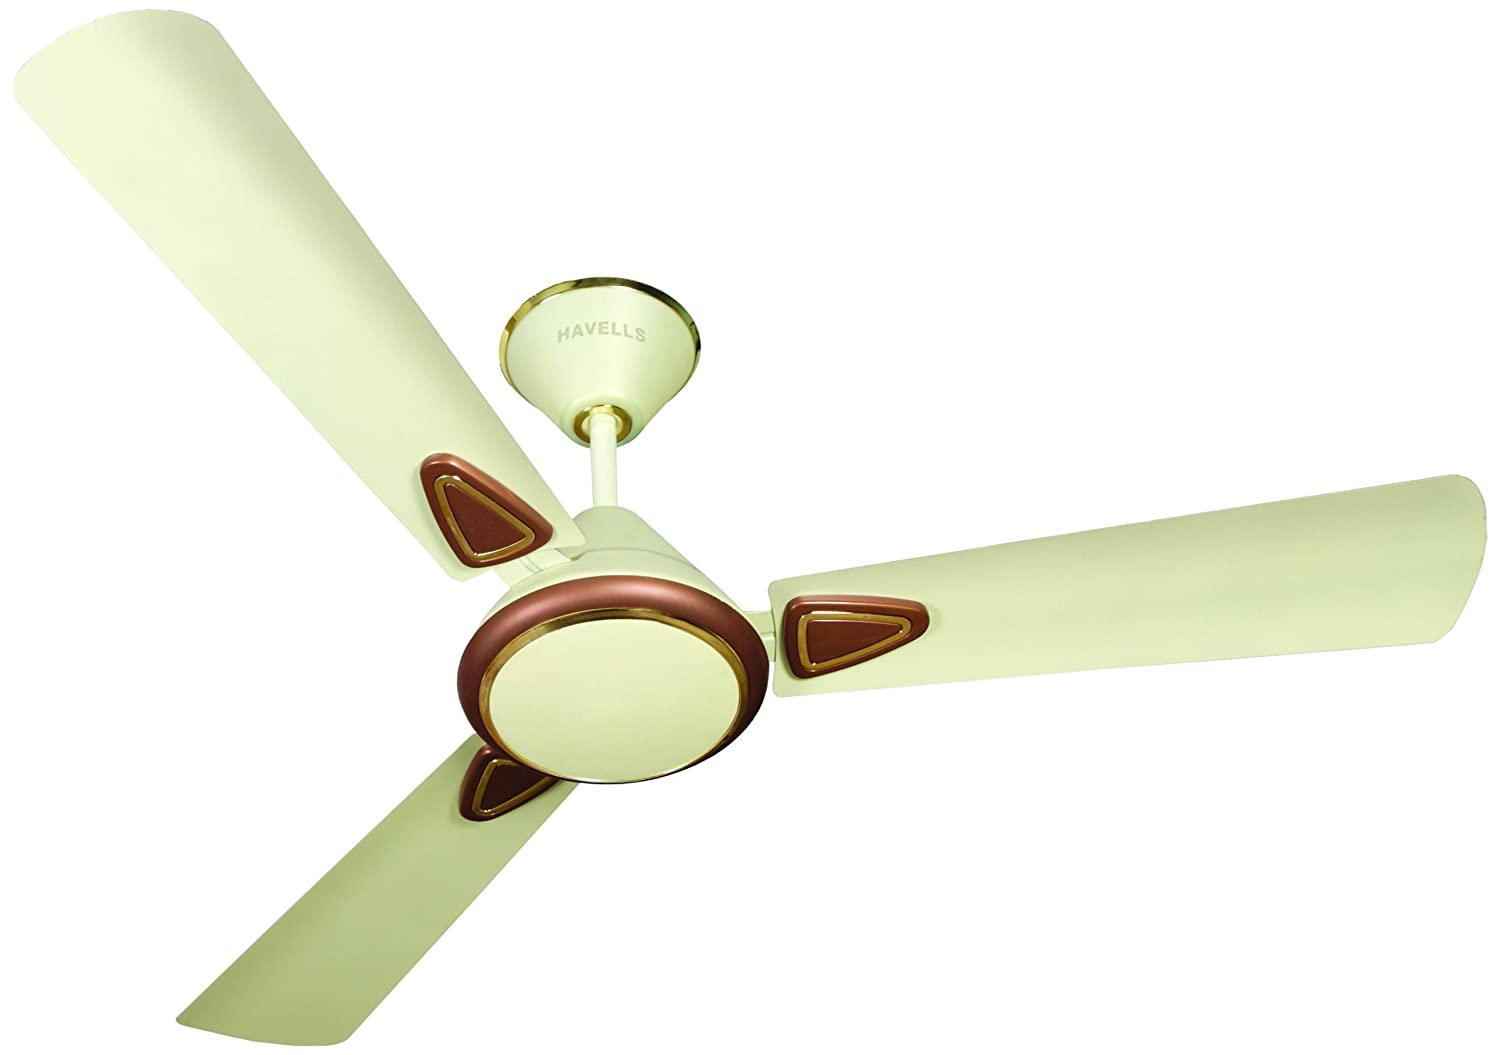 Upto 45% Off On Home Appliances By Amazon | Havells Fusion 2 900mm Matte Finish Ceiling Fan (Pearl Ivory and Brown) @ Rs.1,599